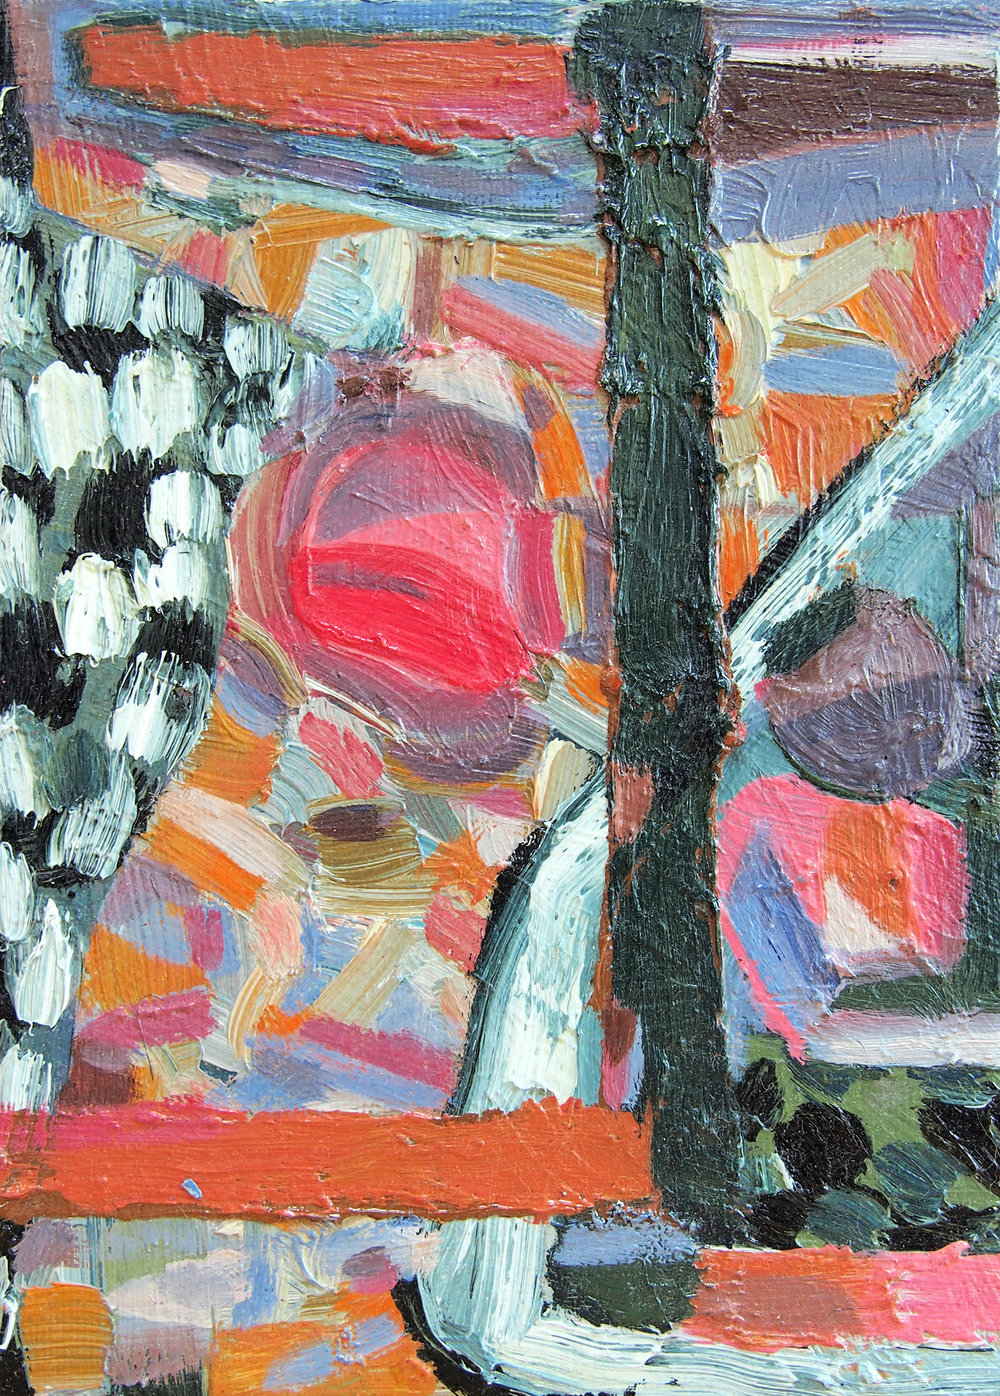 Mark Jeffreys - Ball Play - 2014 - oil on gessoboard - 13x17cm.jpg